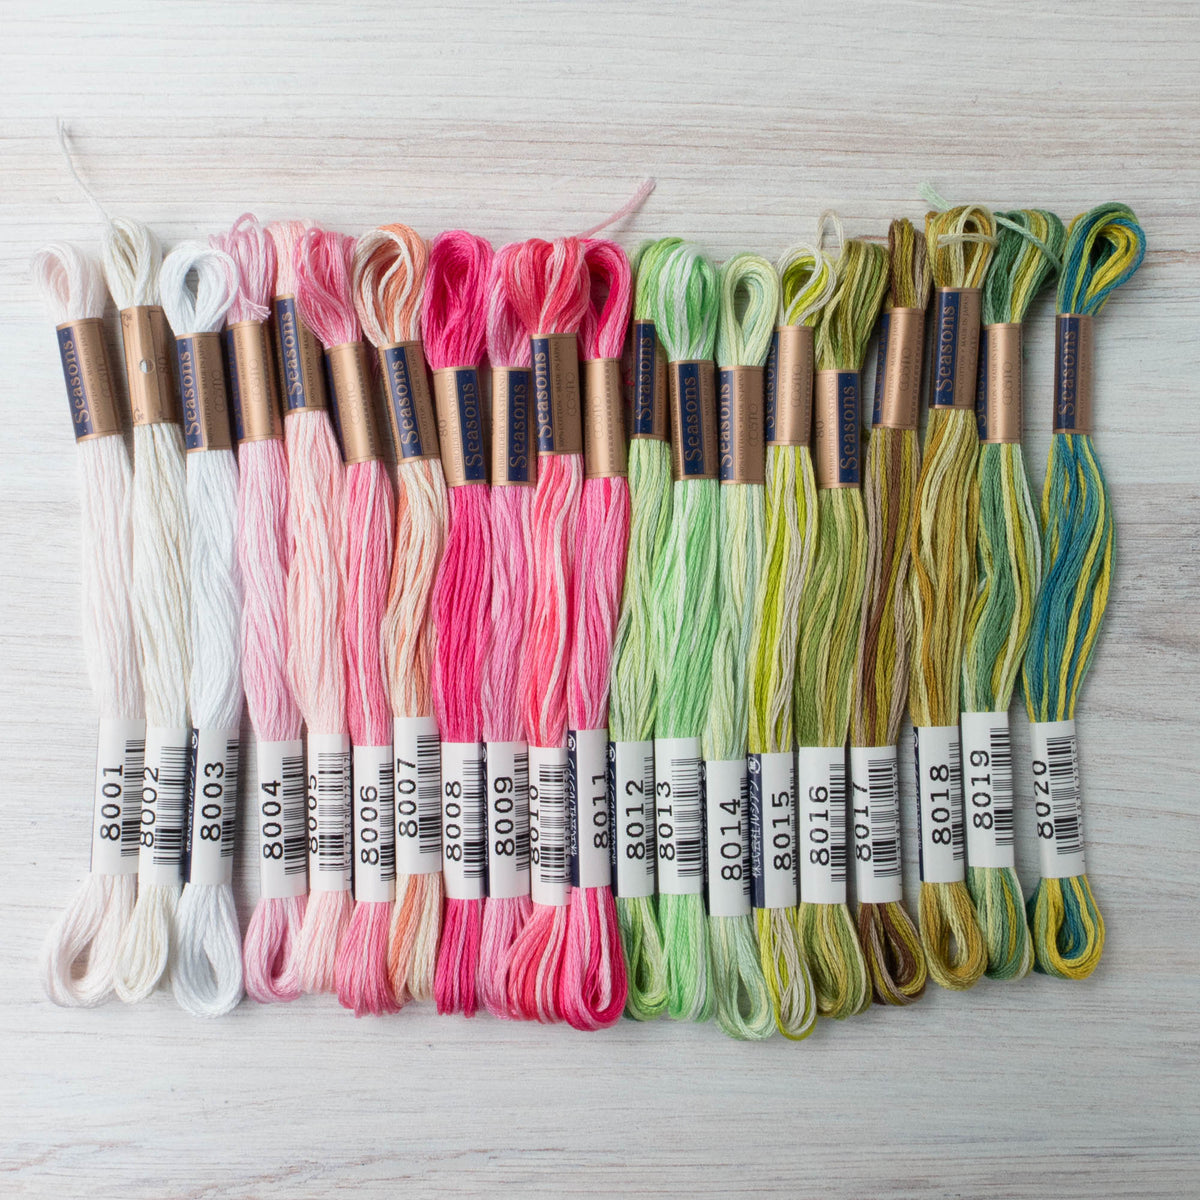 Cosmo Seasons Variegated Embroidery Floss Set - 8000s Pink and Greens